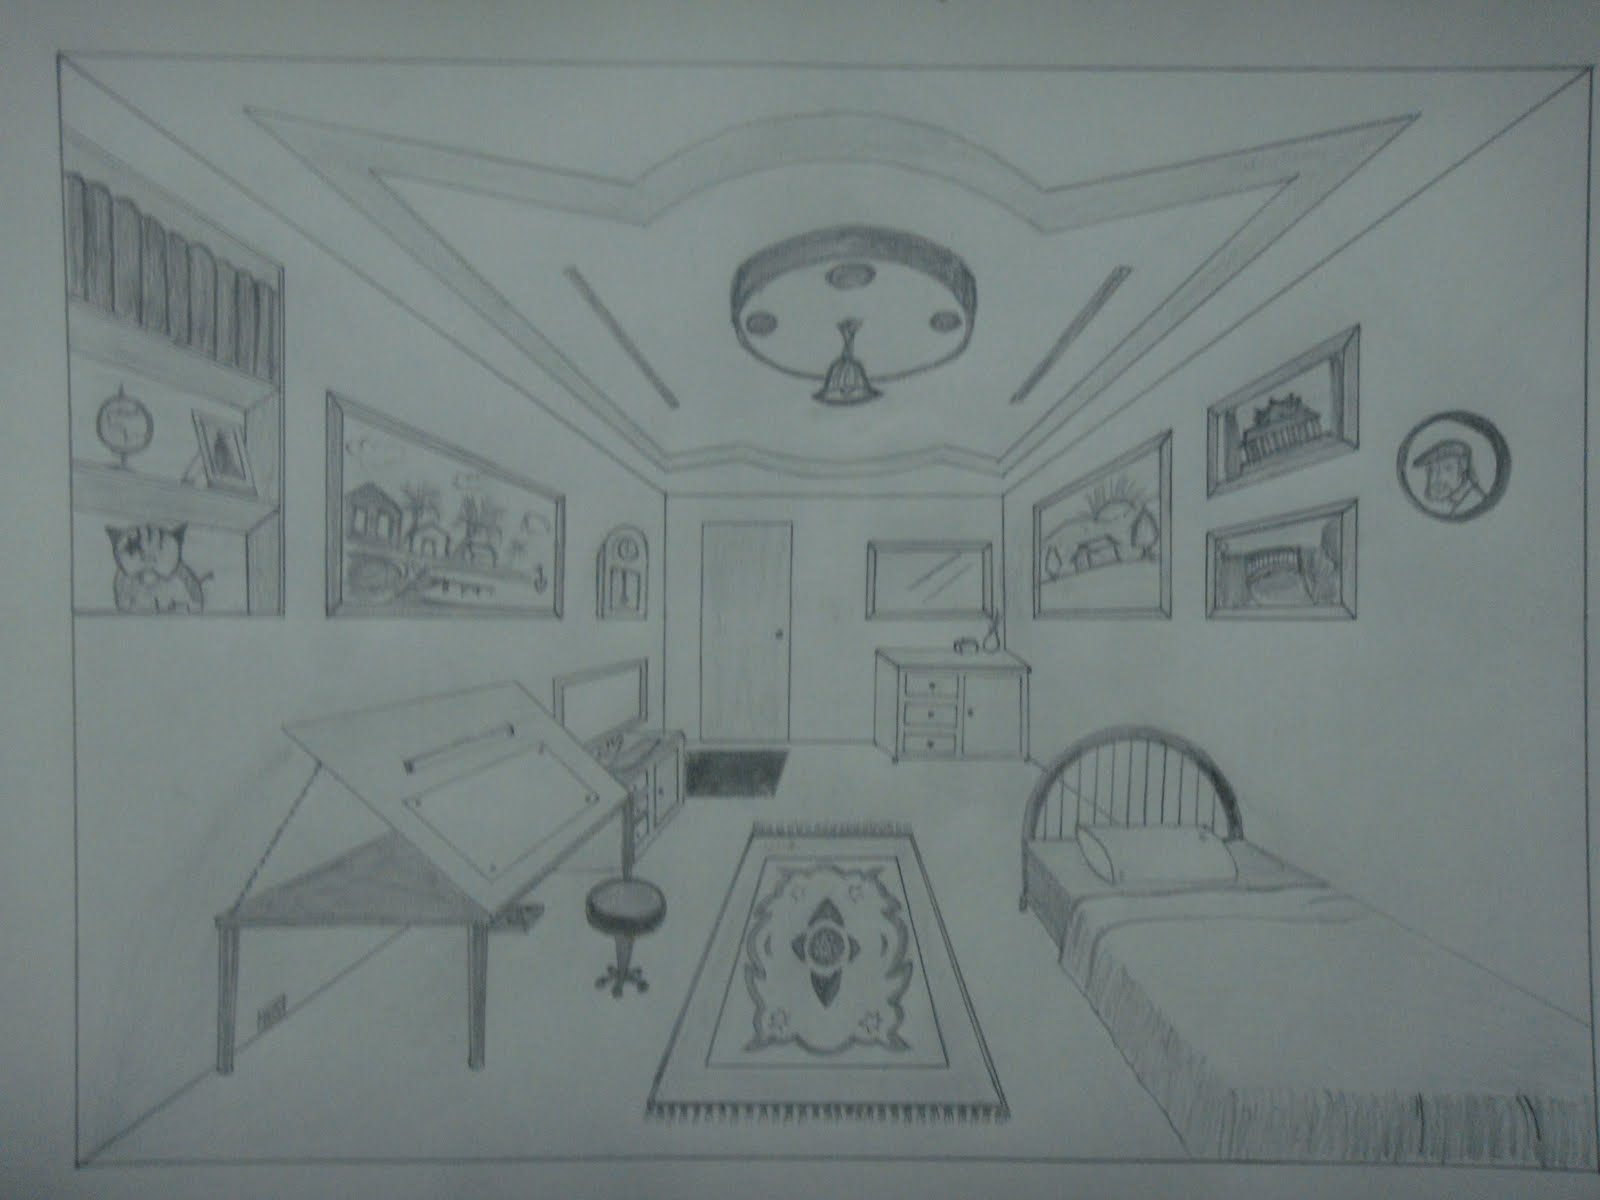 Drawn room easy Personal is can This Perspective